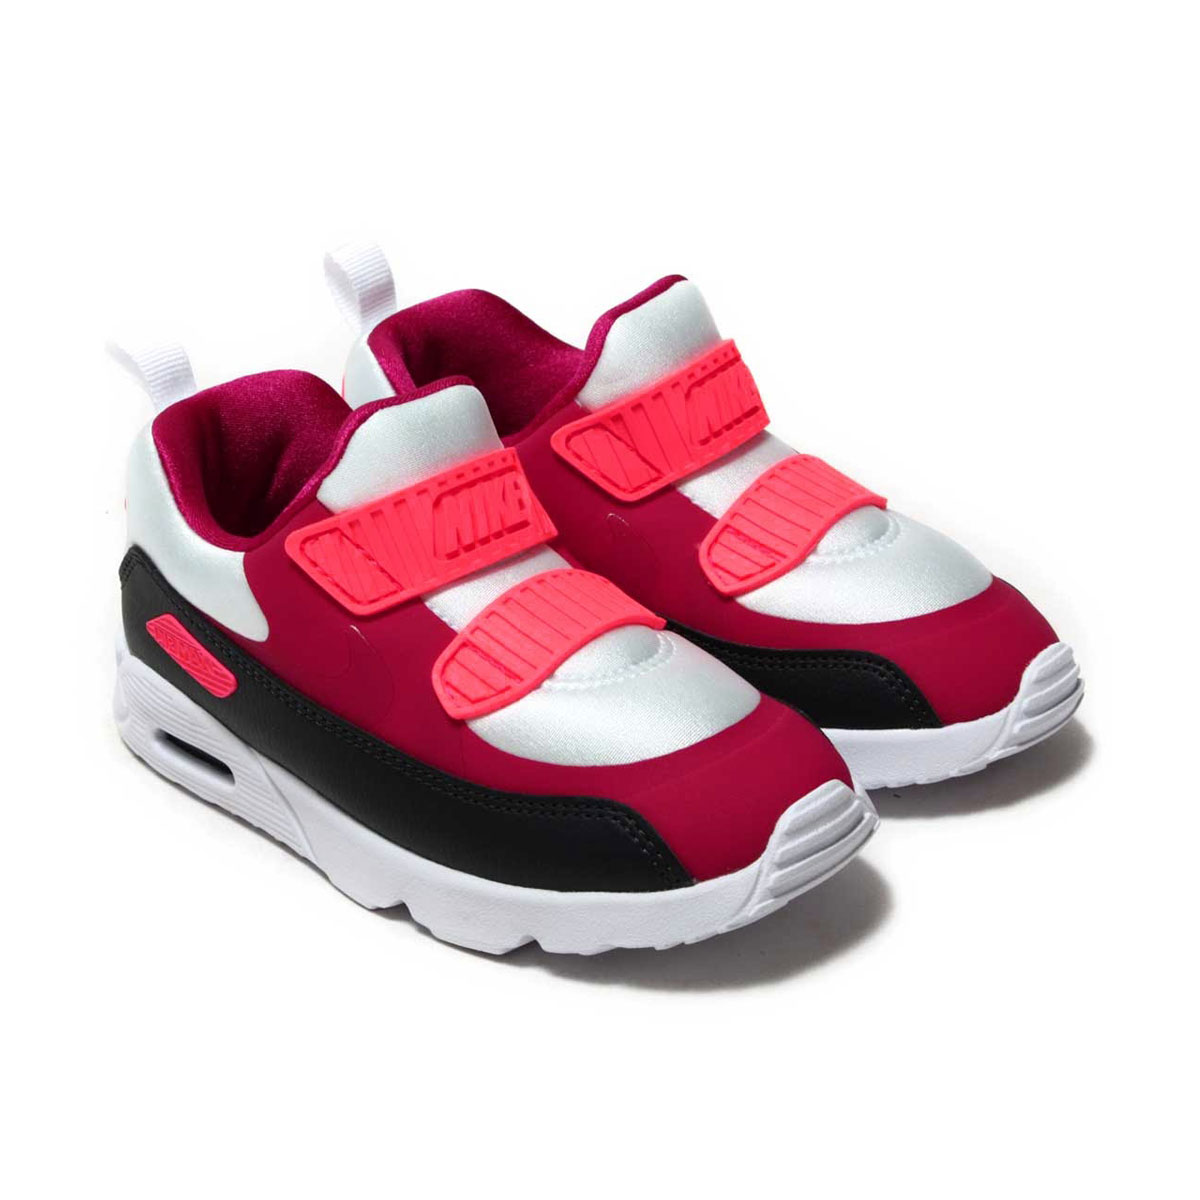 8acd156140f3 NIKE AIR MAX TINY 90 (TD) (Kie Ney AMAX Thailand knee 90 TD) WHITE NOBLE  RED-ANTHRACITE-SOLAR RED 17HO-I